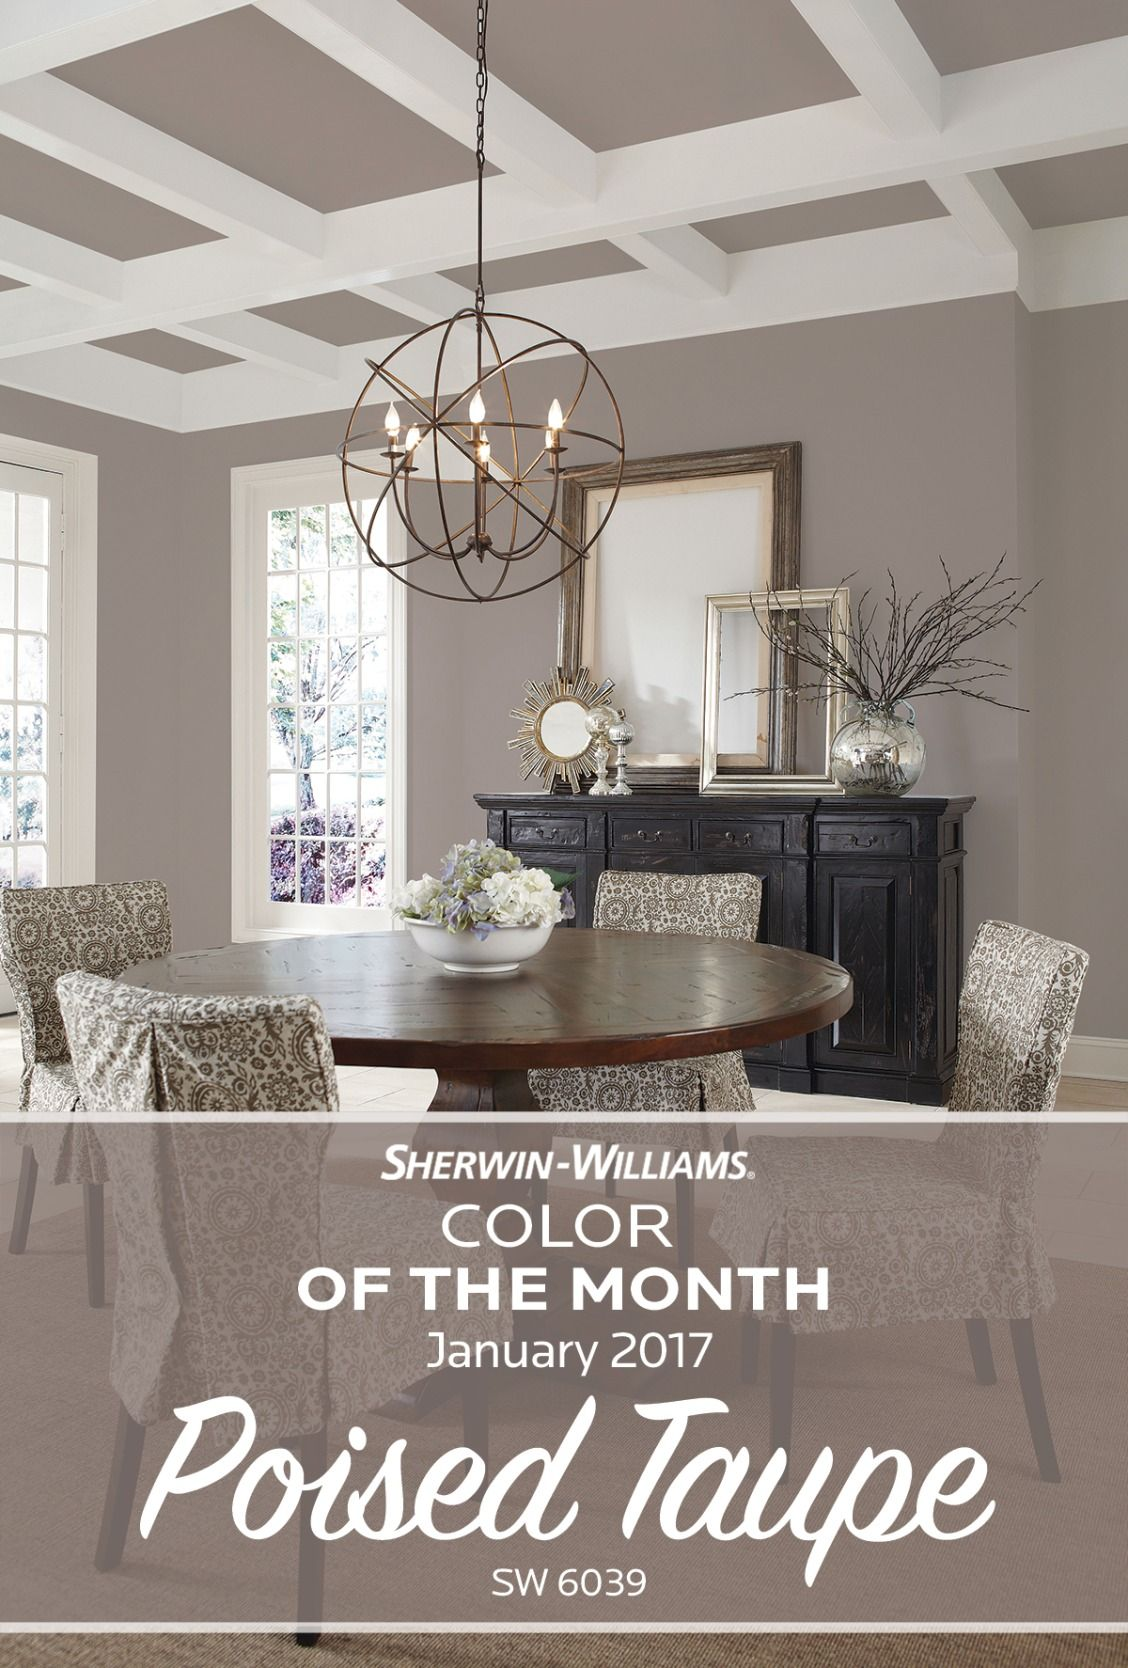 Paint Ideas For Living Room 2017 Window Treatment Start The New Year With A Touch Of Color Our Sherwin Williams Month January Poised Taupe Sw 6039 Strikes Fine Balance